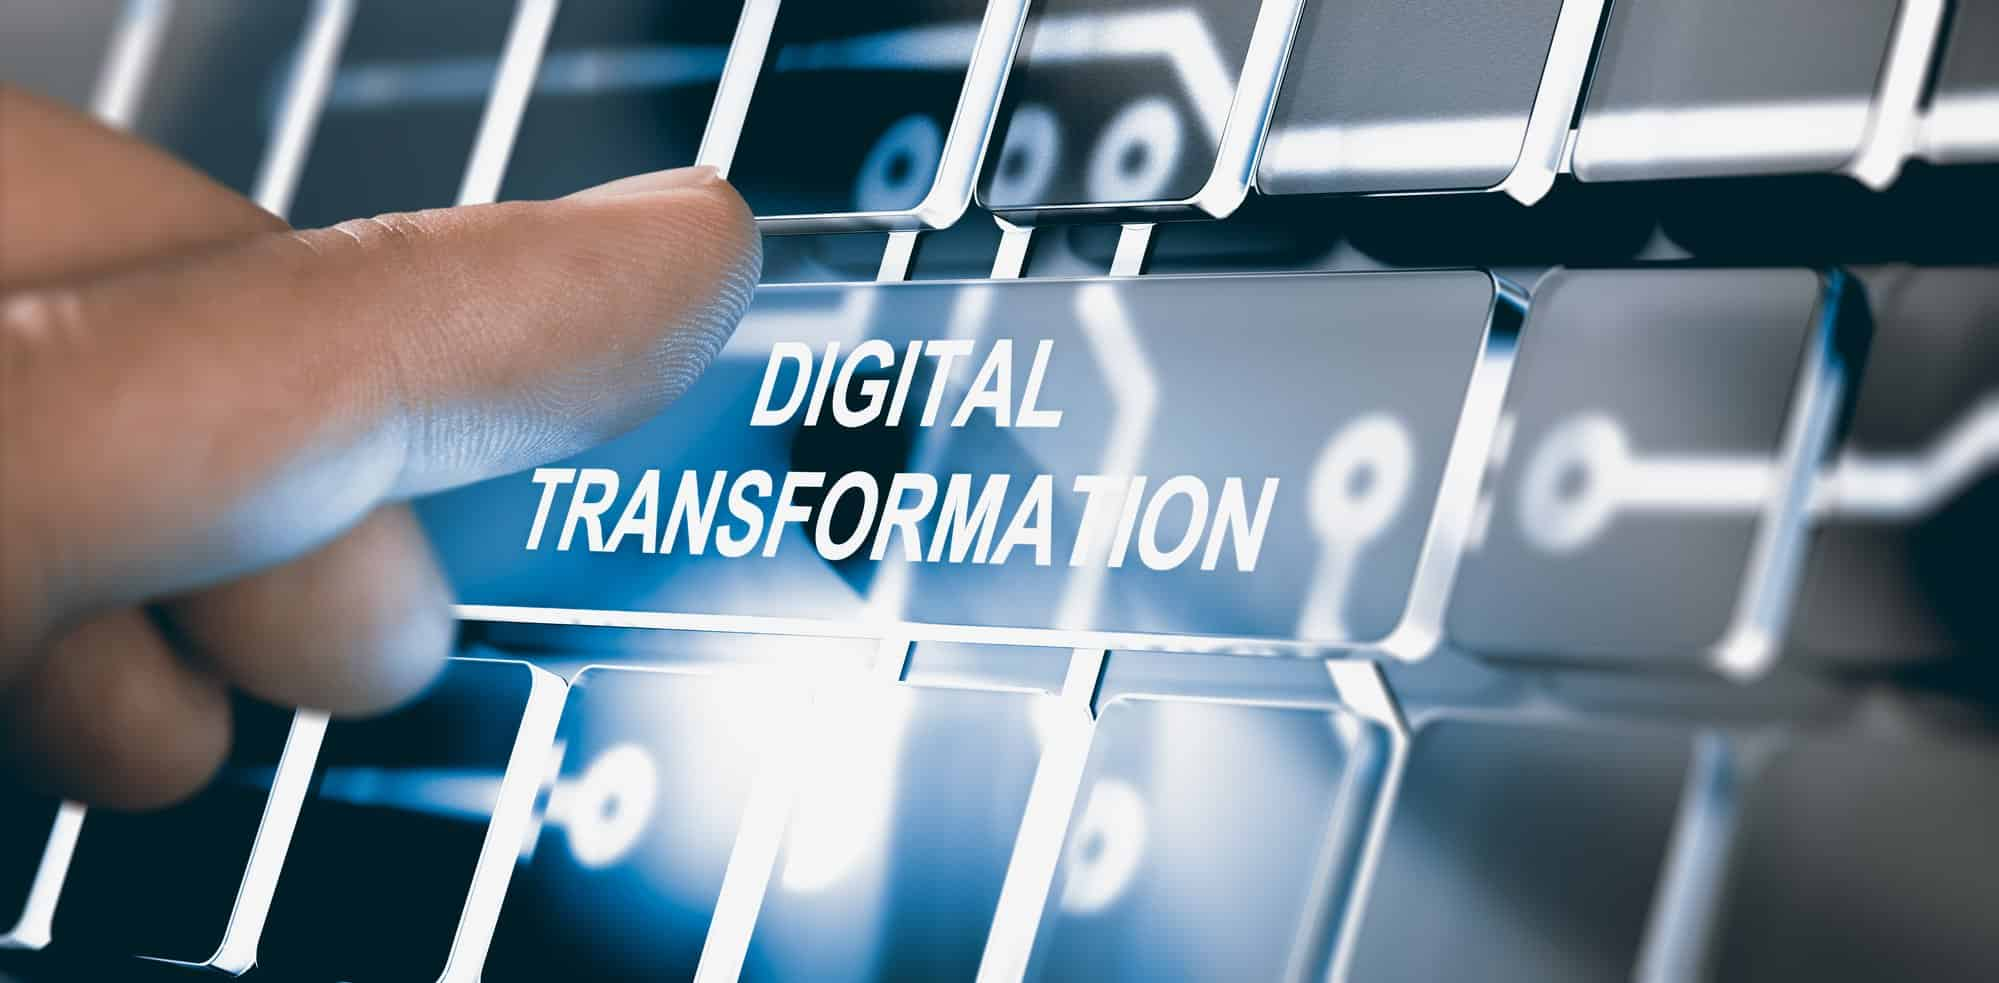 Digital Transformation Is Changing Everything, And Technology Is The Easy Part